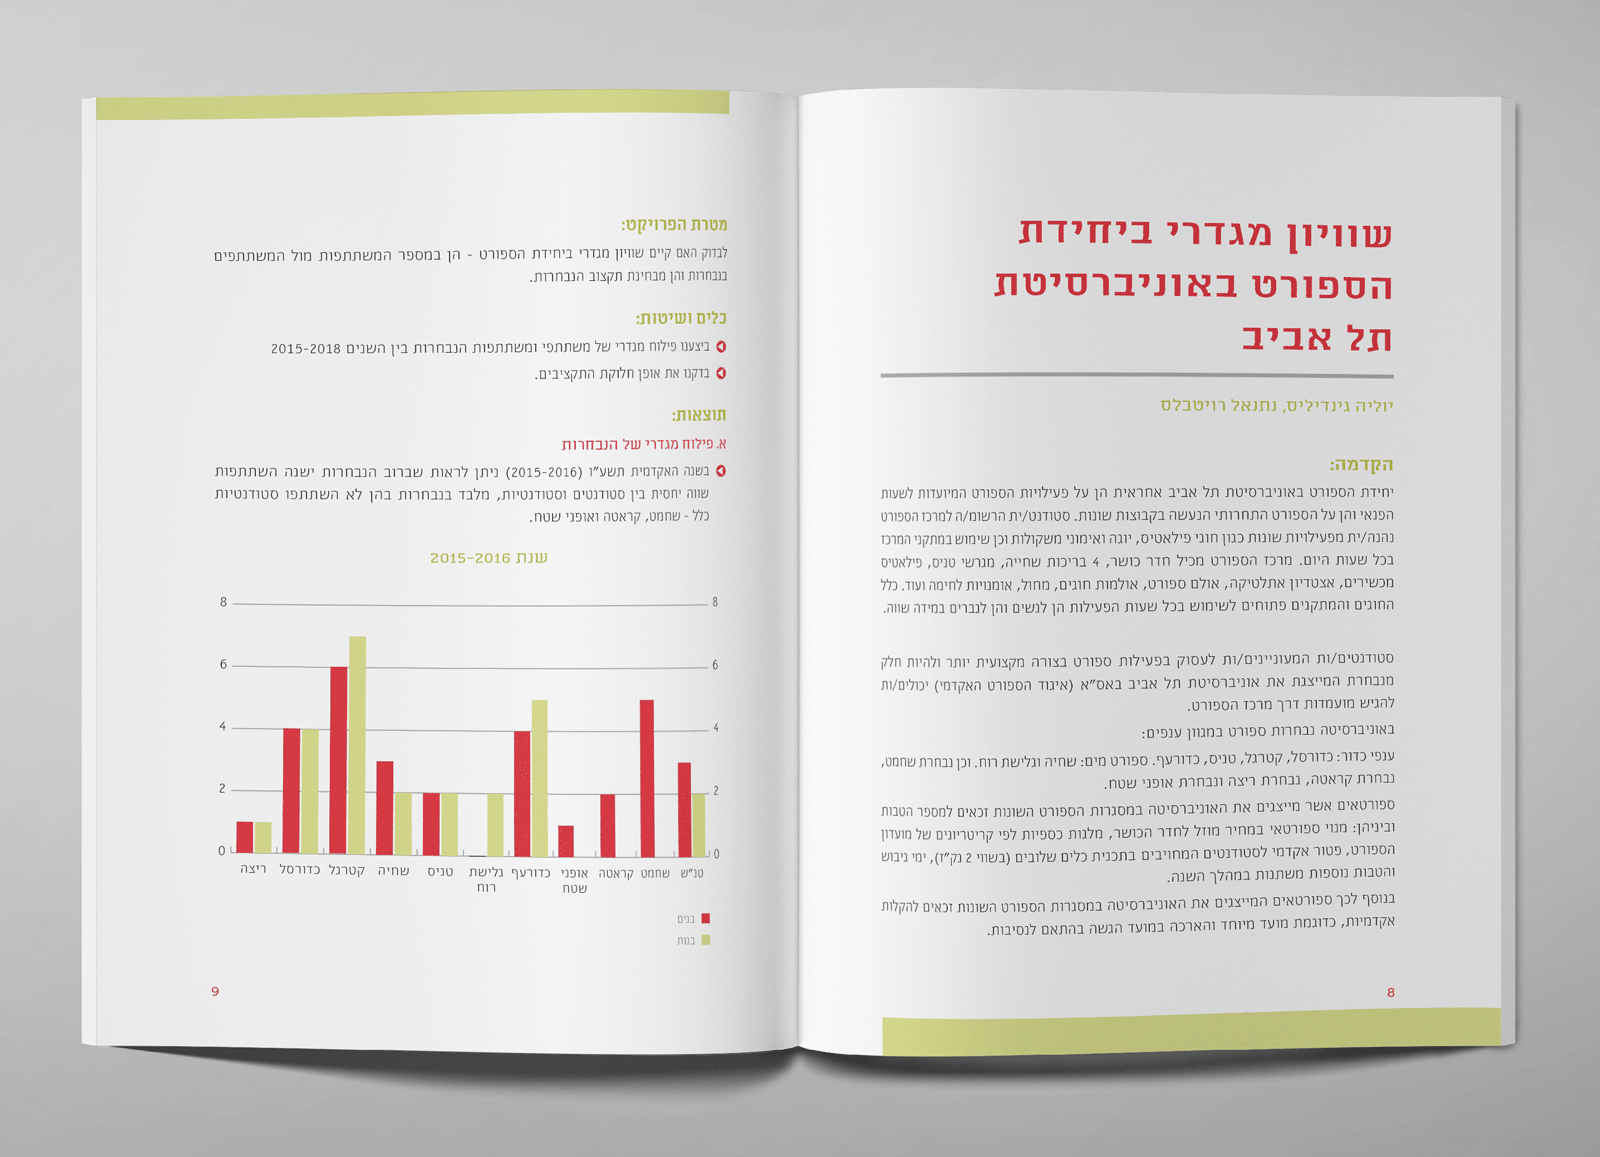 http://bigeyes.co.il/wp-content/uploads/2019/07/adva-gender18-3.png